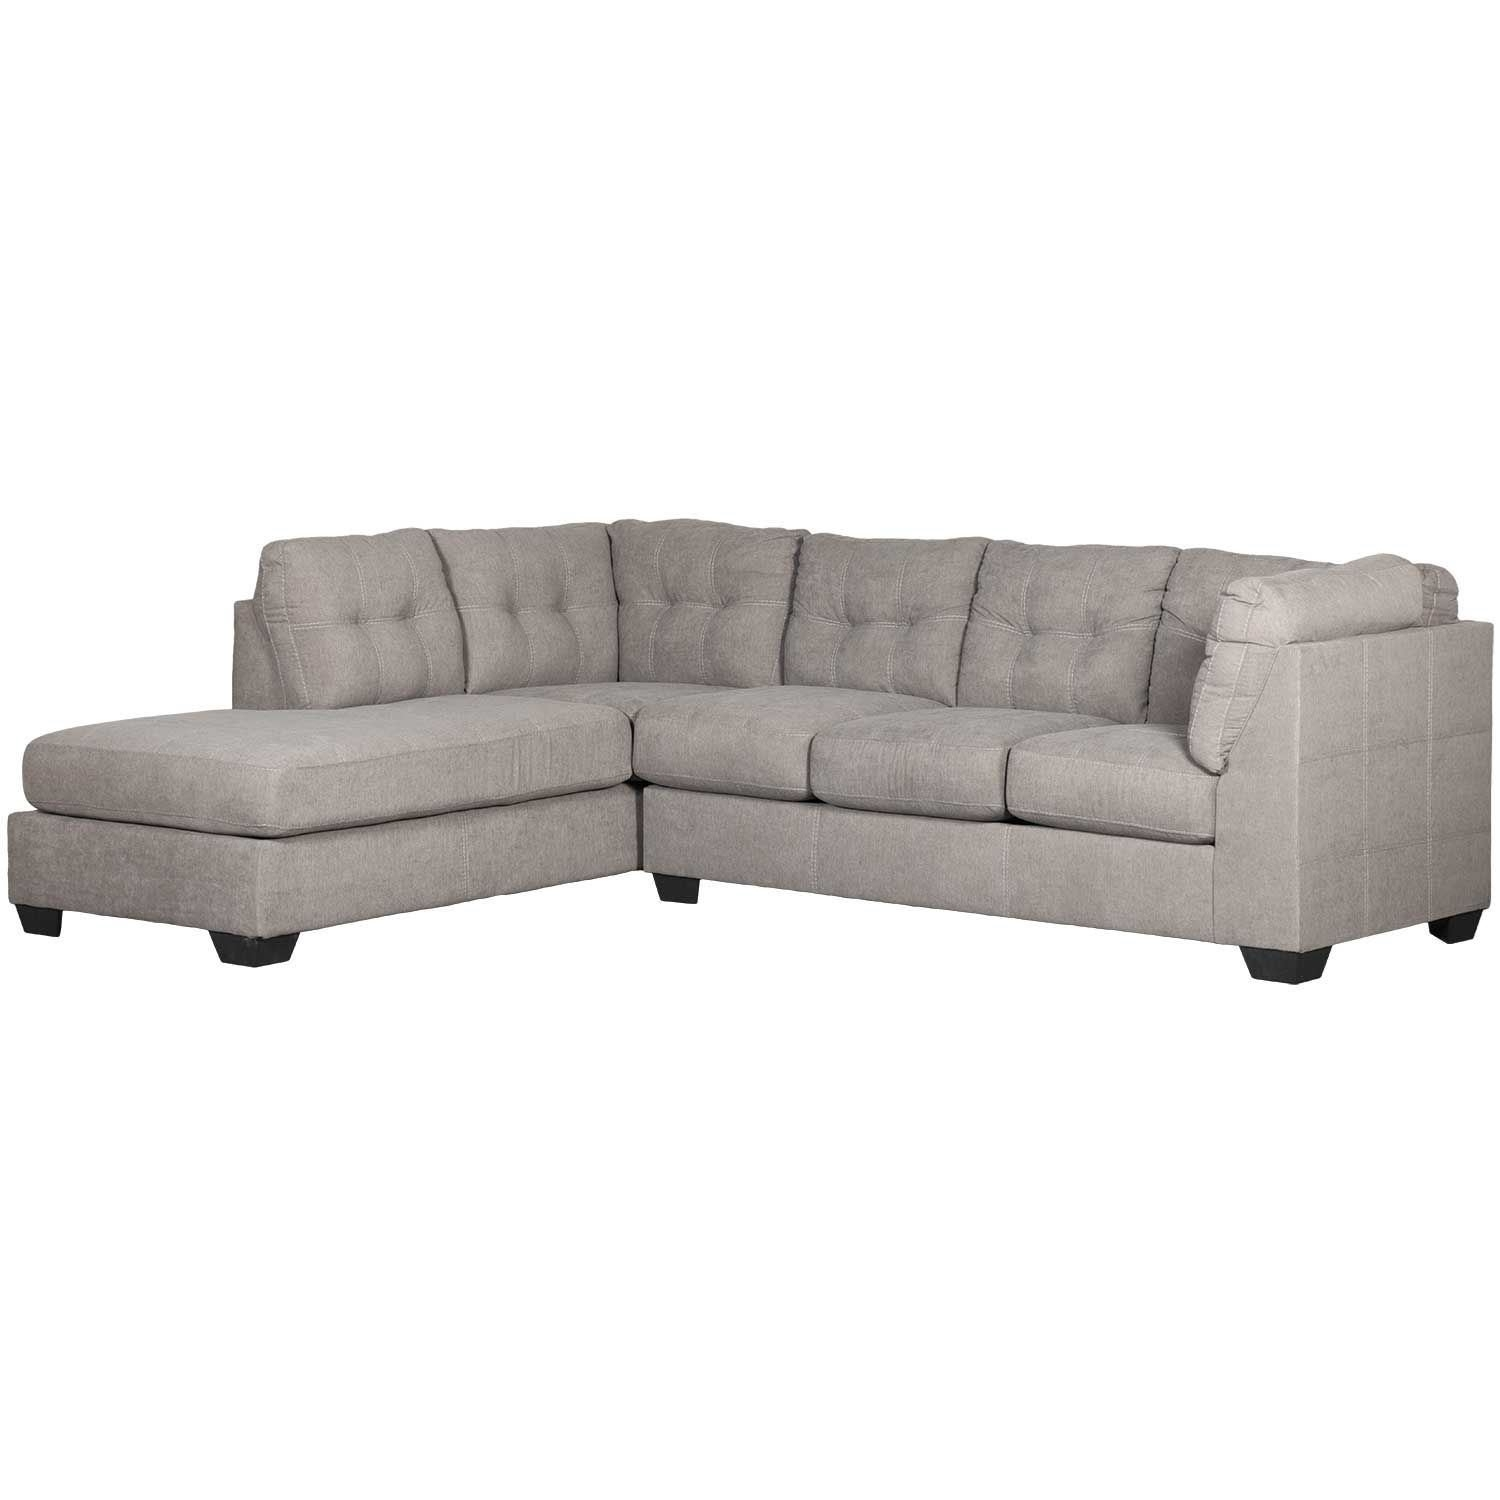 Maier Charcoal 2 Piece Sectional With Laf Chaise | 4520016/67 pertaining to Arrowmask 2 Piece Sectionals With Sleeper & Left Facing Chaise (Image 16 of 30)